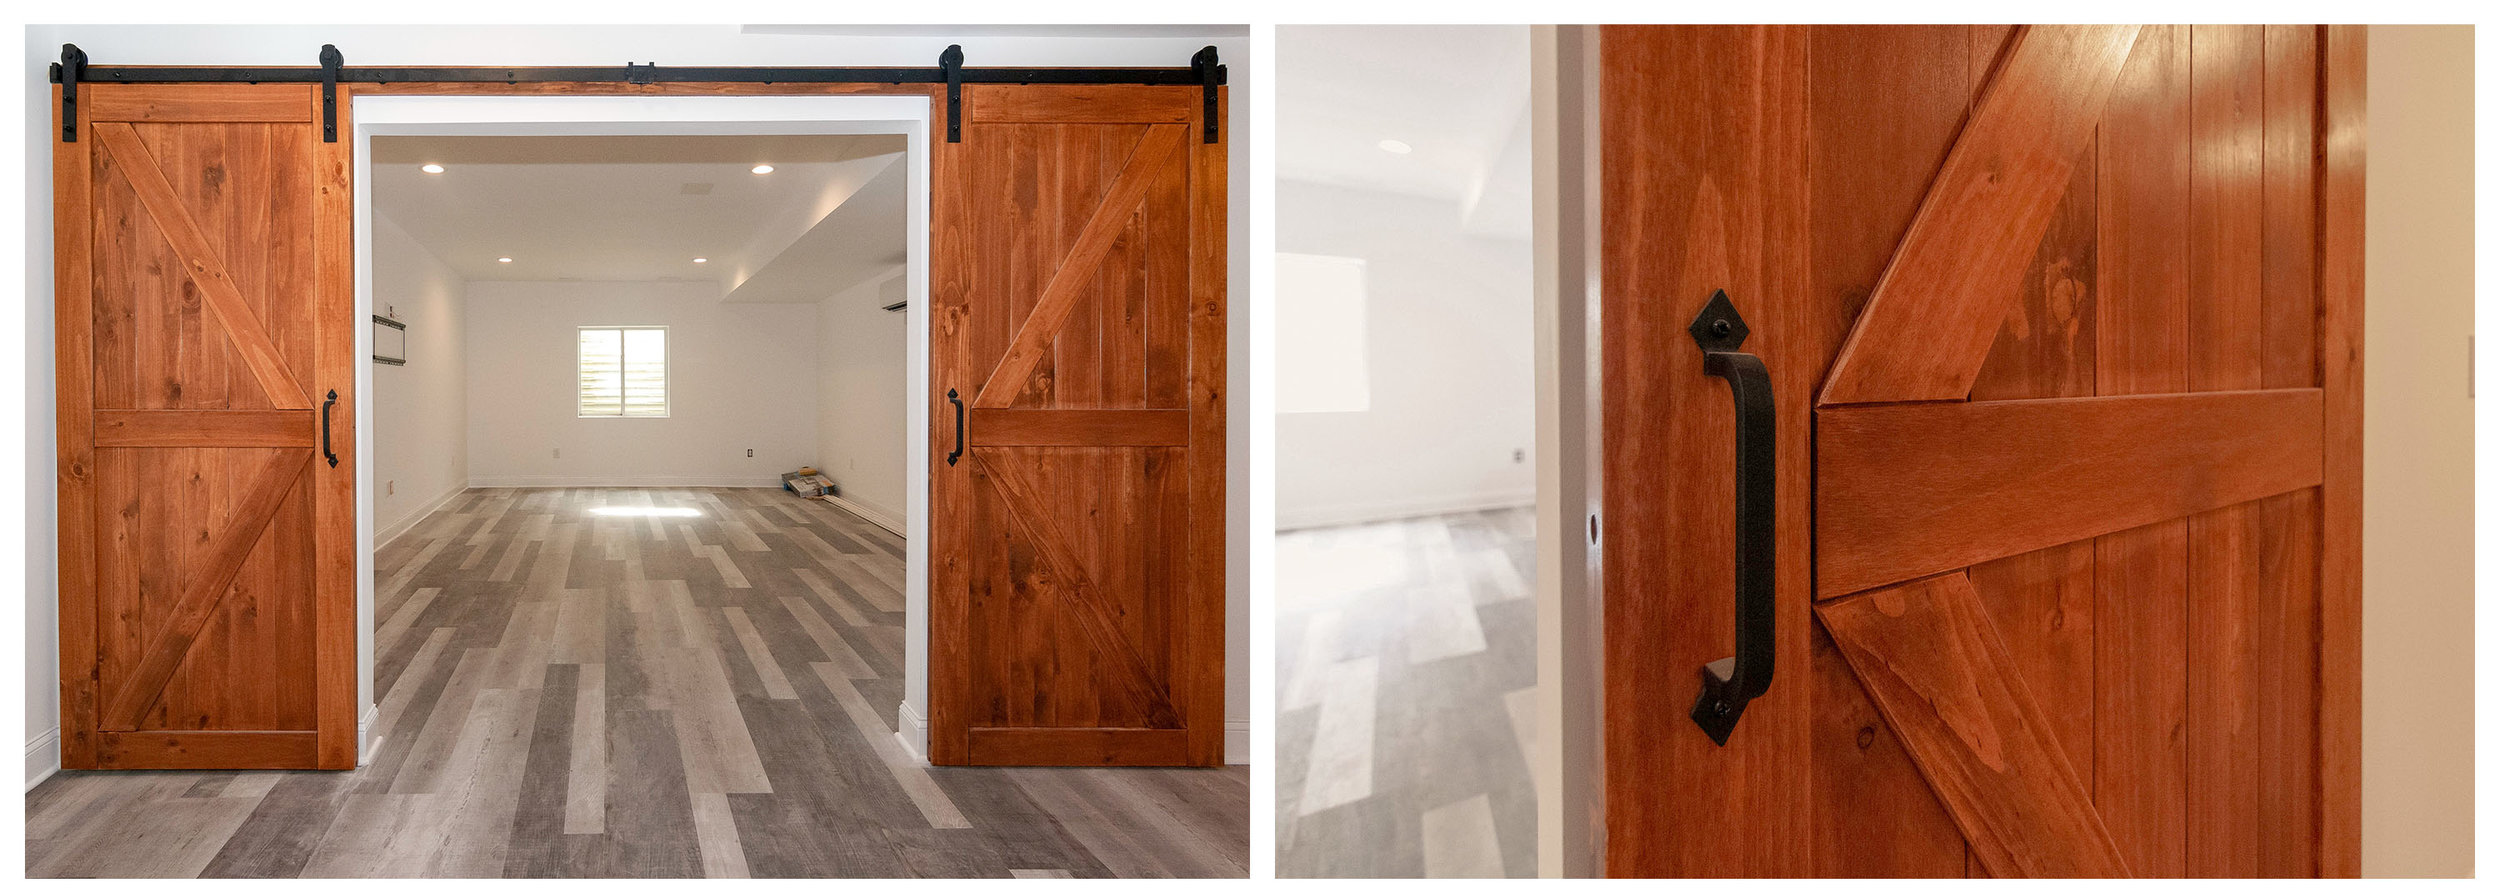 6 Harness Basement Barn Door Comparison.jpg